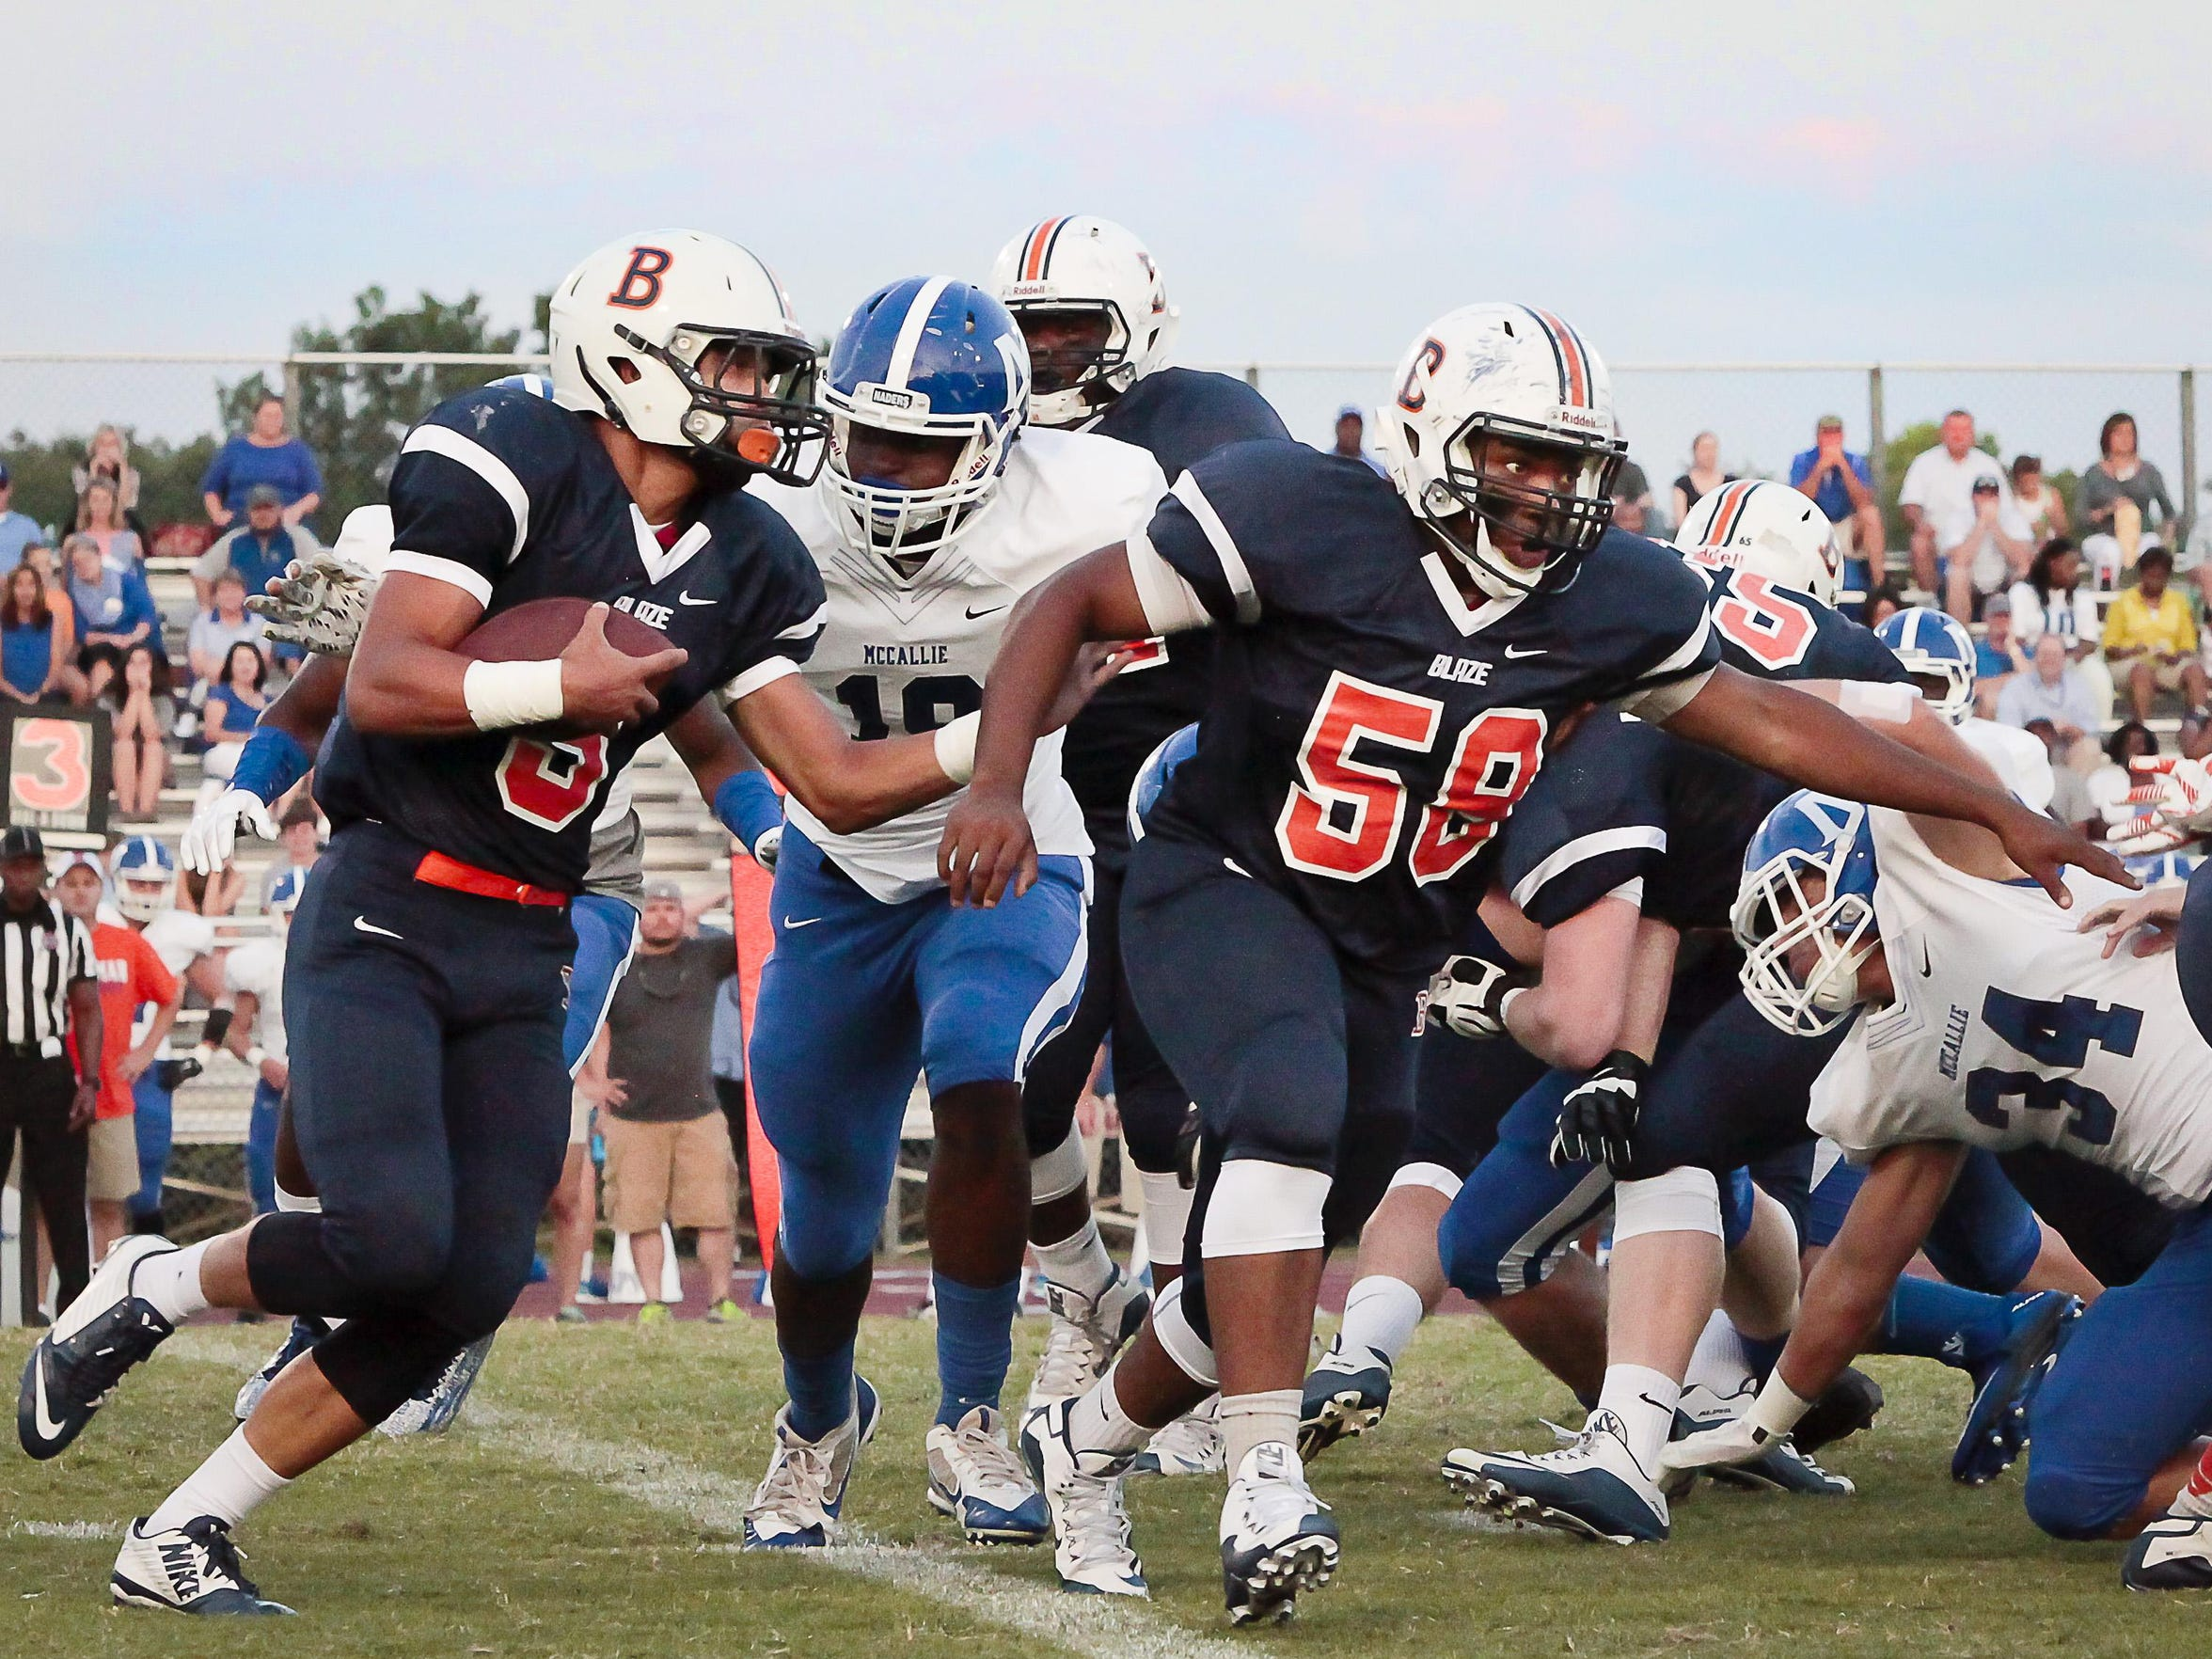 Myles Hord (58) blocks for Taeler Dowdy (3) in Blackman's